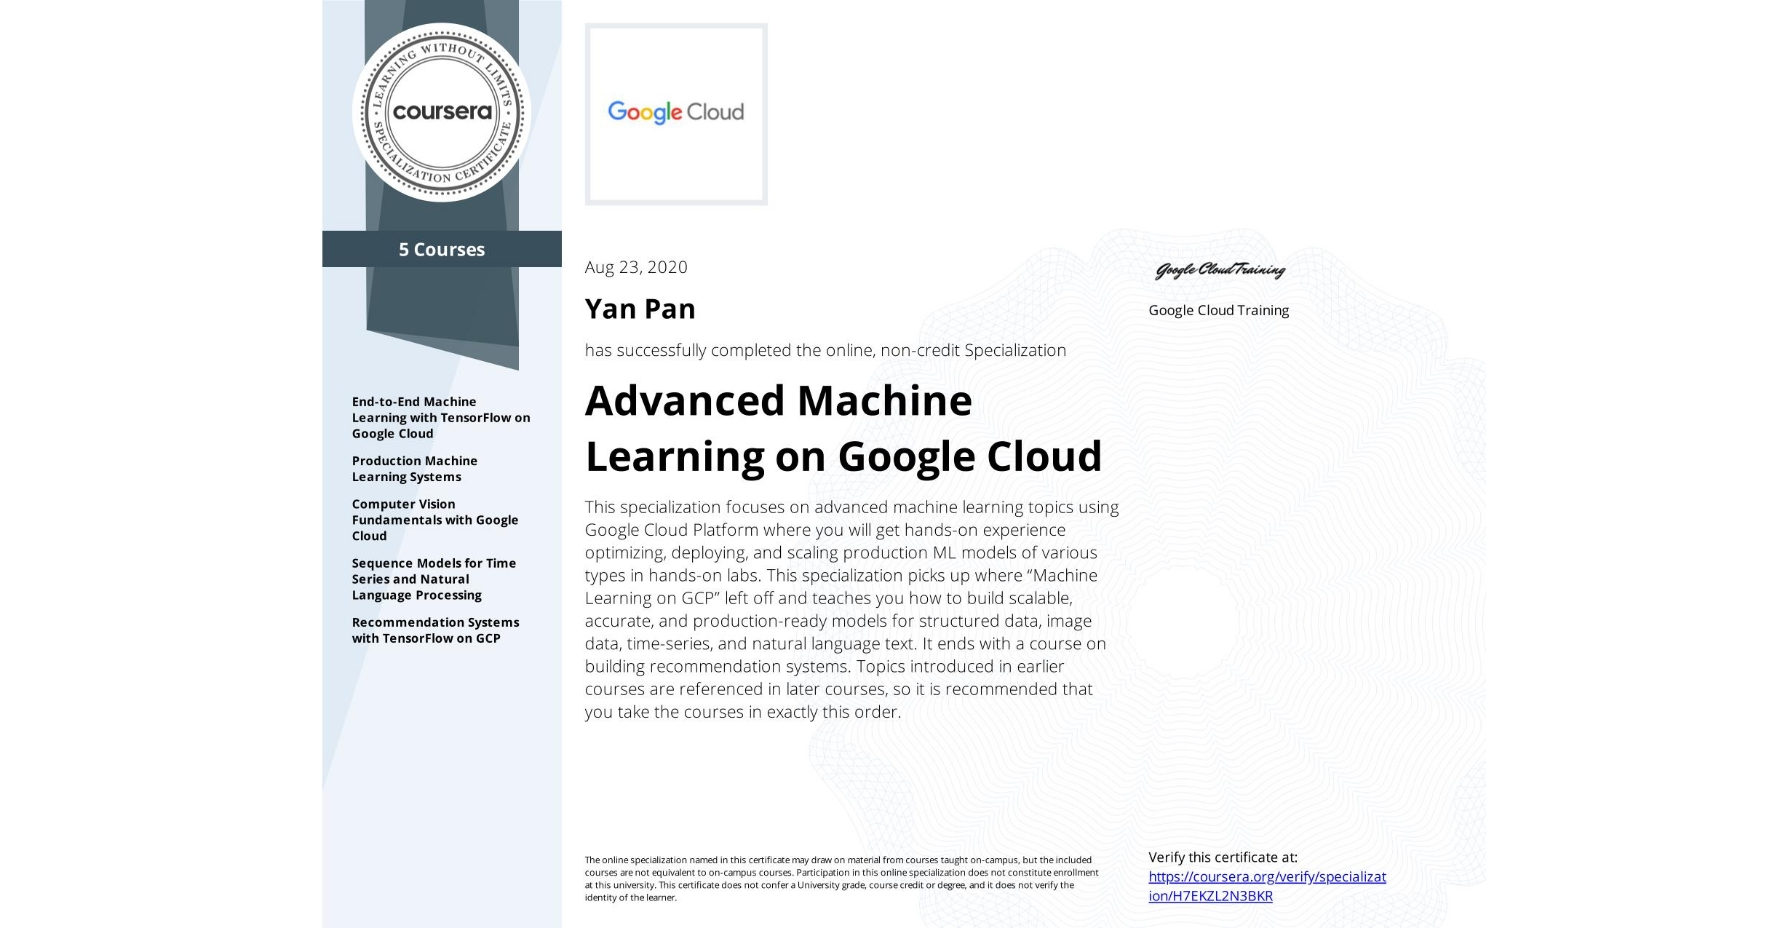 """View certificate for Yan Pan, Advanced Machine Learning on Google Cloud, offered through Coursera. This specialization focuses on advanced machine learning topics using Google Cloud Platform where you will get hands-on experience optimizing, deploying, and scaling production ML models of various types in hands-on labs. This specialization picks up where """"Machine Learning on GCP"""" left off and teaches you how to build scalable, accurate, and production-ready models for structured data, image data, time-series, and natural language text. It ends with a course on building recommendation systems. Topics introduced in earlier courses are referenced in later courses, so it is recommended that you take the courses in exactly this order."""